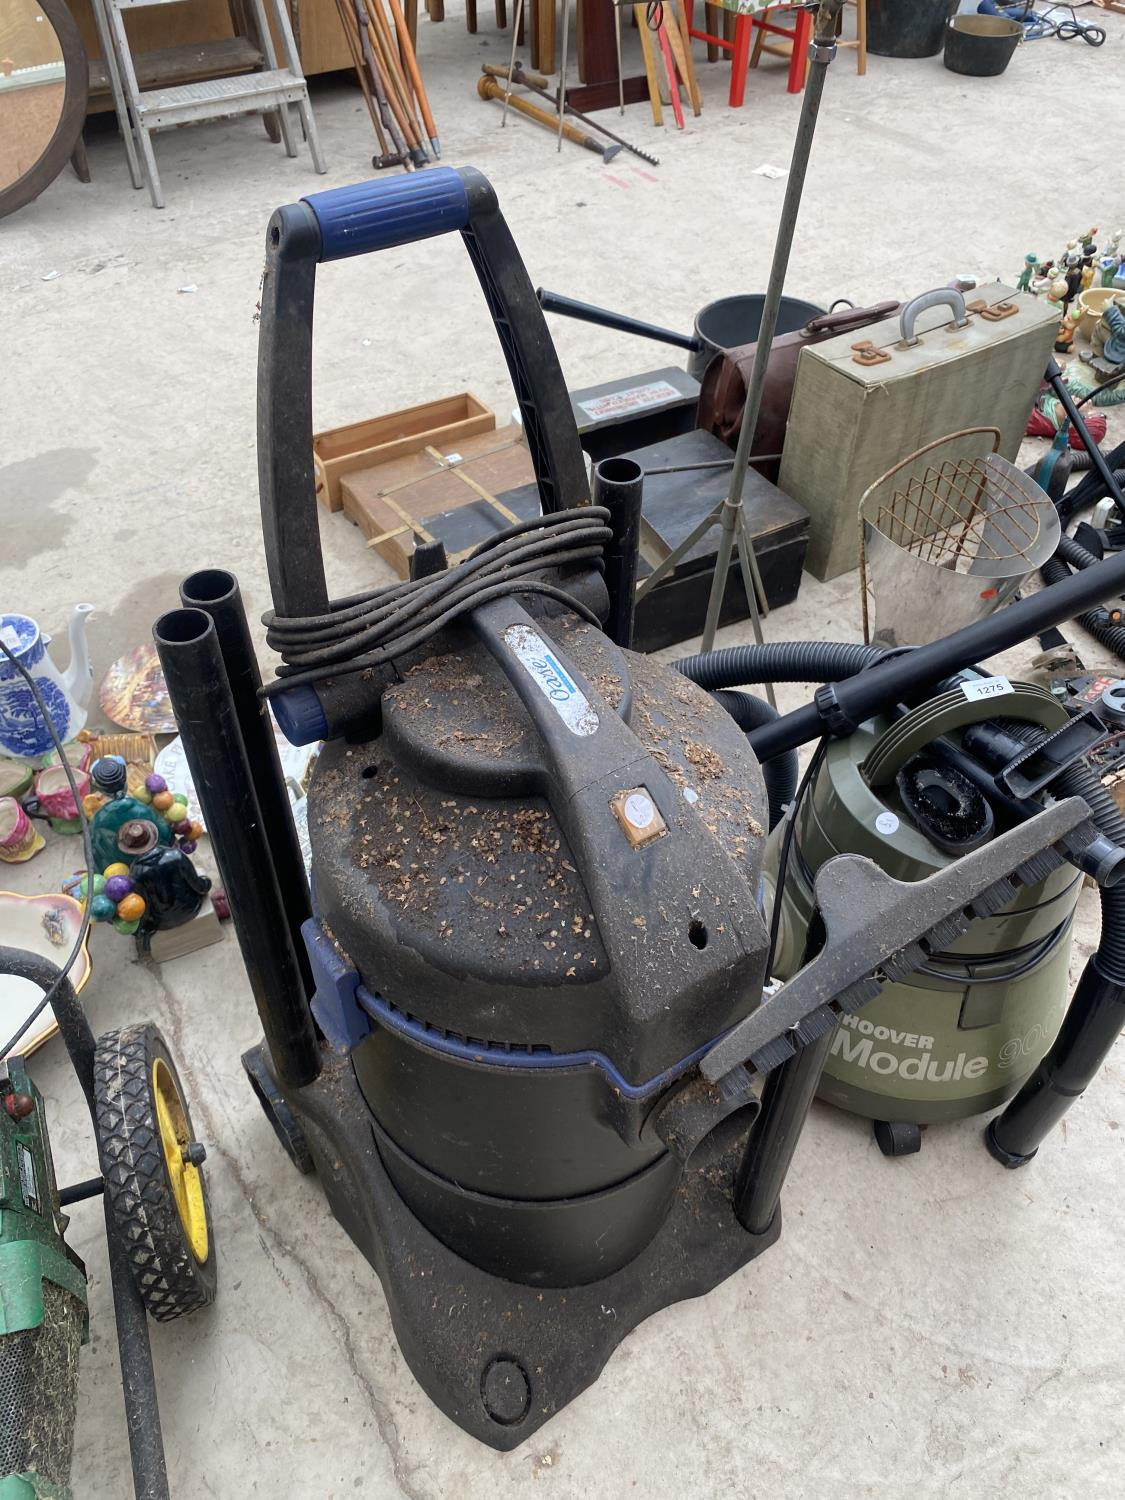 AN OASE VACUUM CLEANER AND A FURTHER HOOVER MODULE 900 - Image 3 of 5